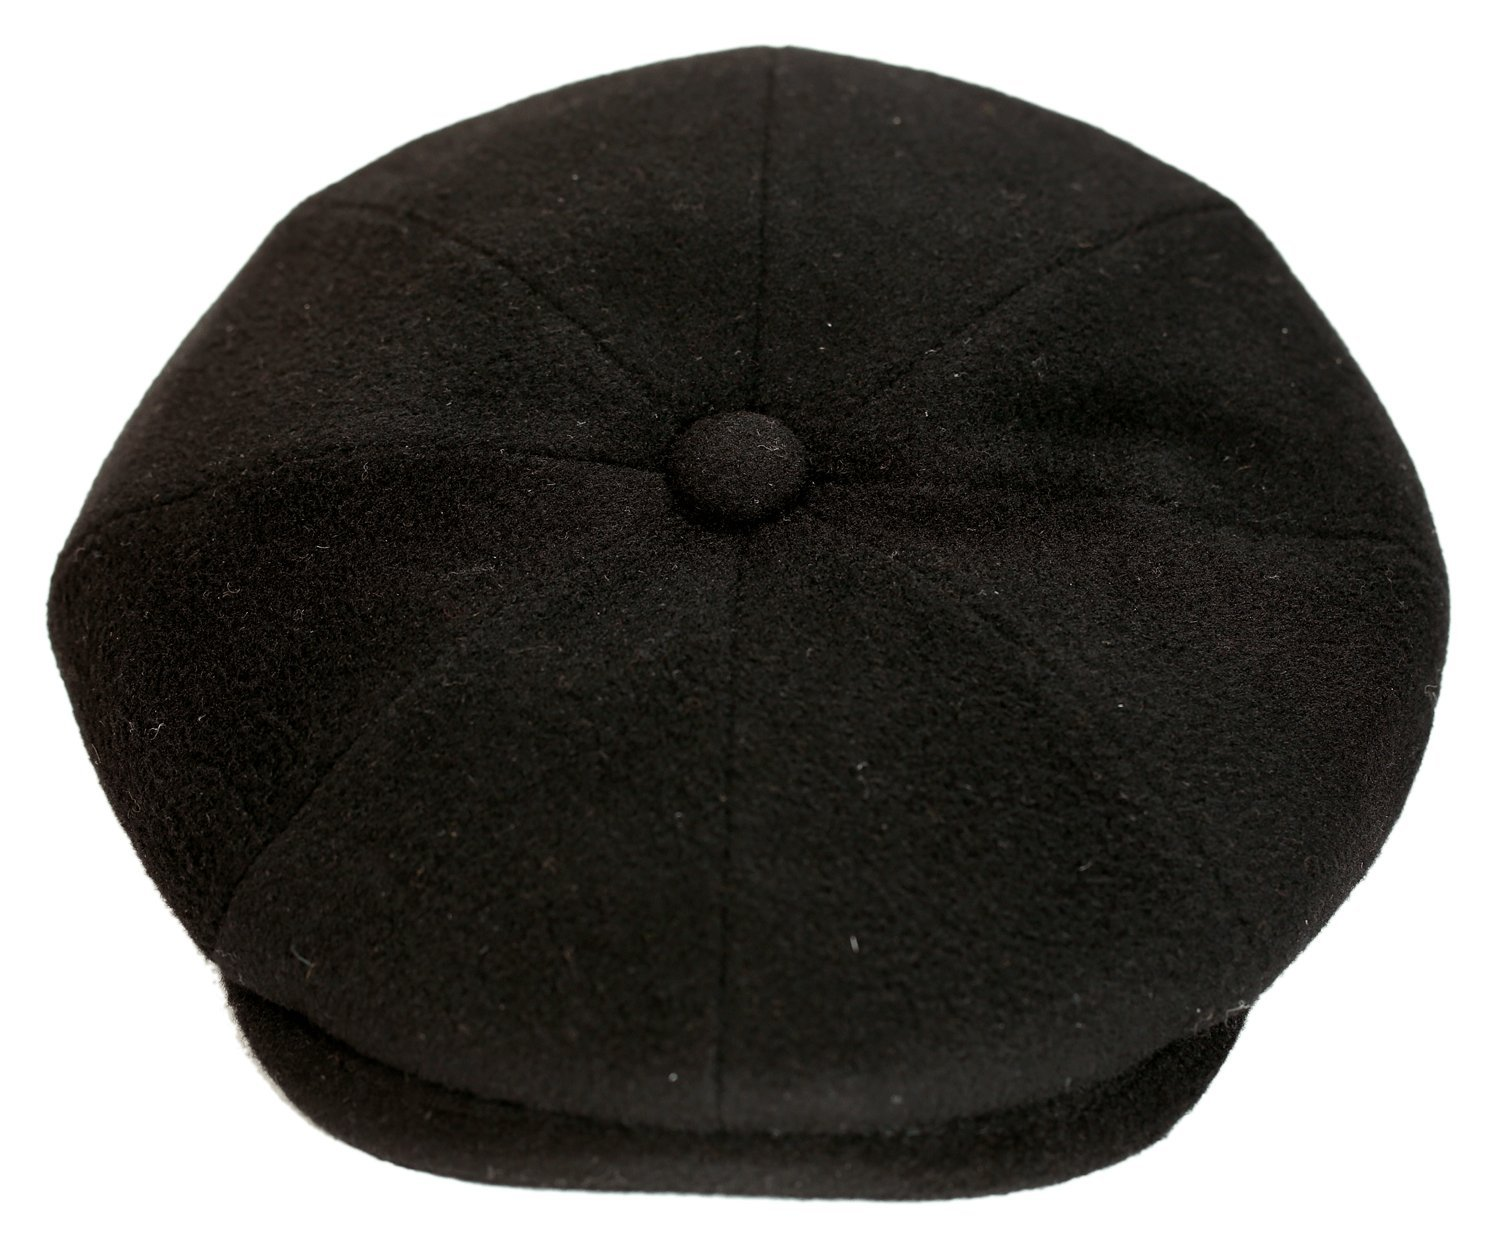 Levine Hat Cashmere 'Classico' 8-Panel newsboy Cap (XXLarge (Fits 7 3/4 To 7 7/8), Black) by Levine Hat (Image #2)